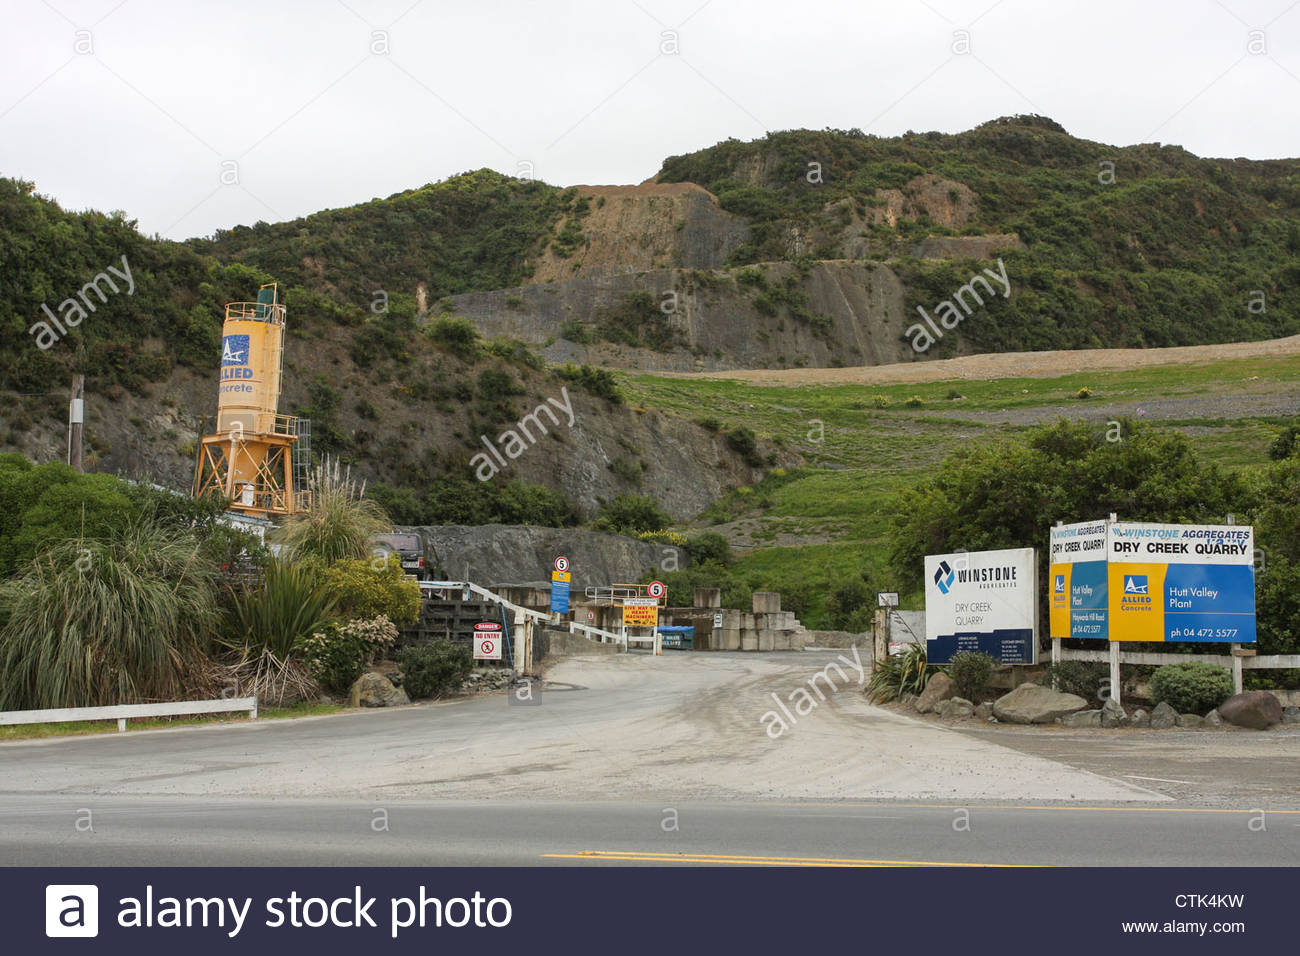 Dry Creek Quarry Wellington and the Wairarapa, Wellington New Zealand, Dry Creek Quarry Lord of The Rings filming ...